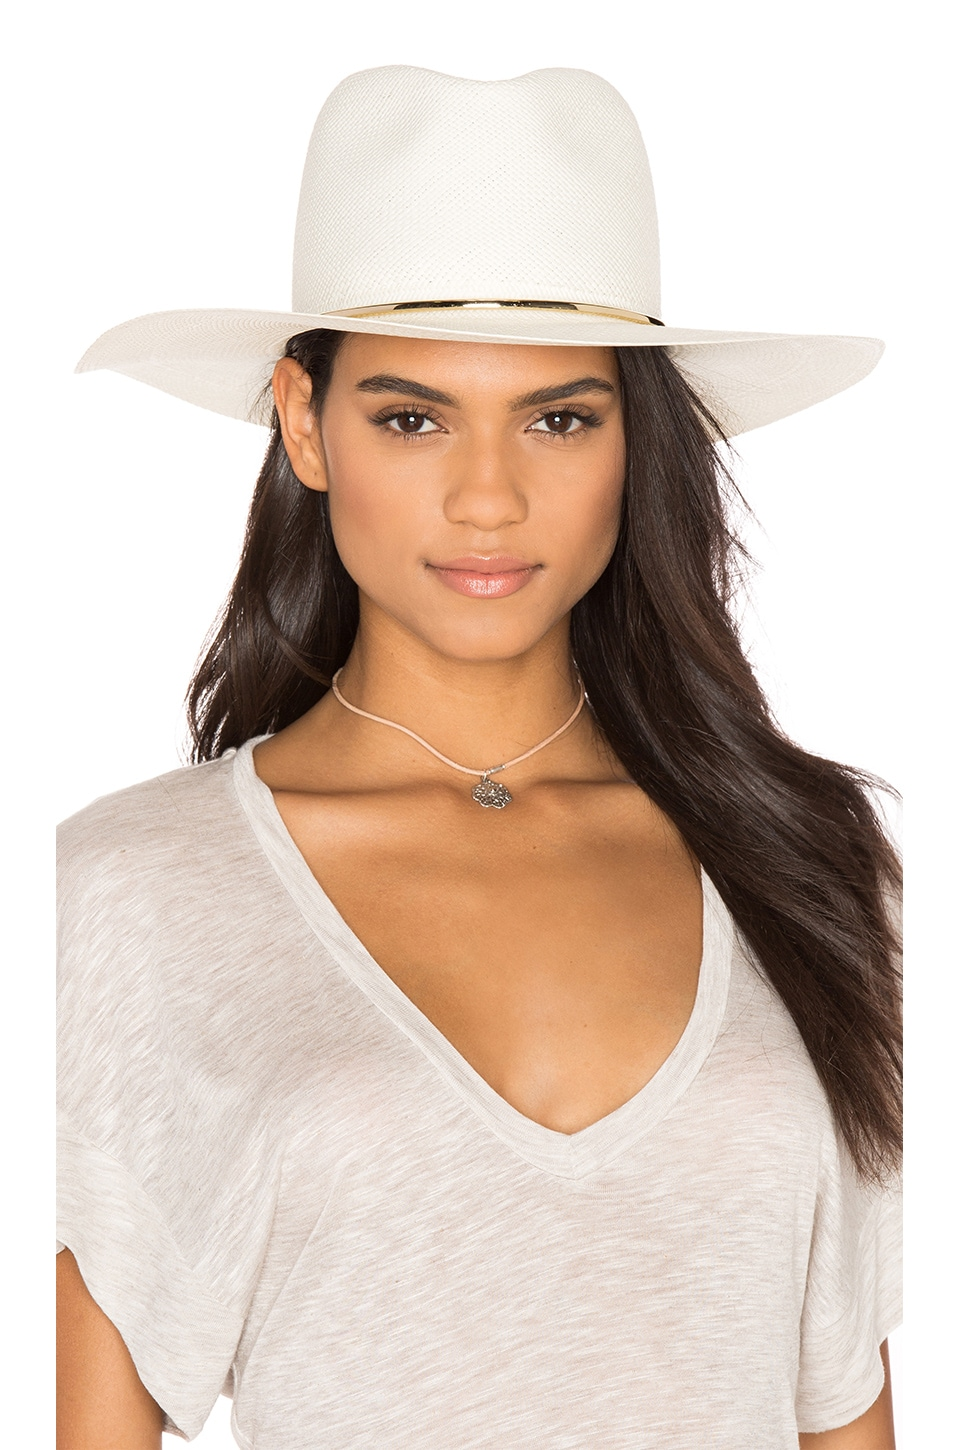 Janessa Leone Begonia Wide Brimmed Panama Hat in Bleach